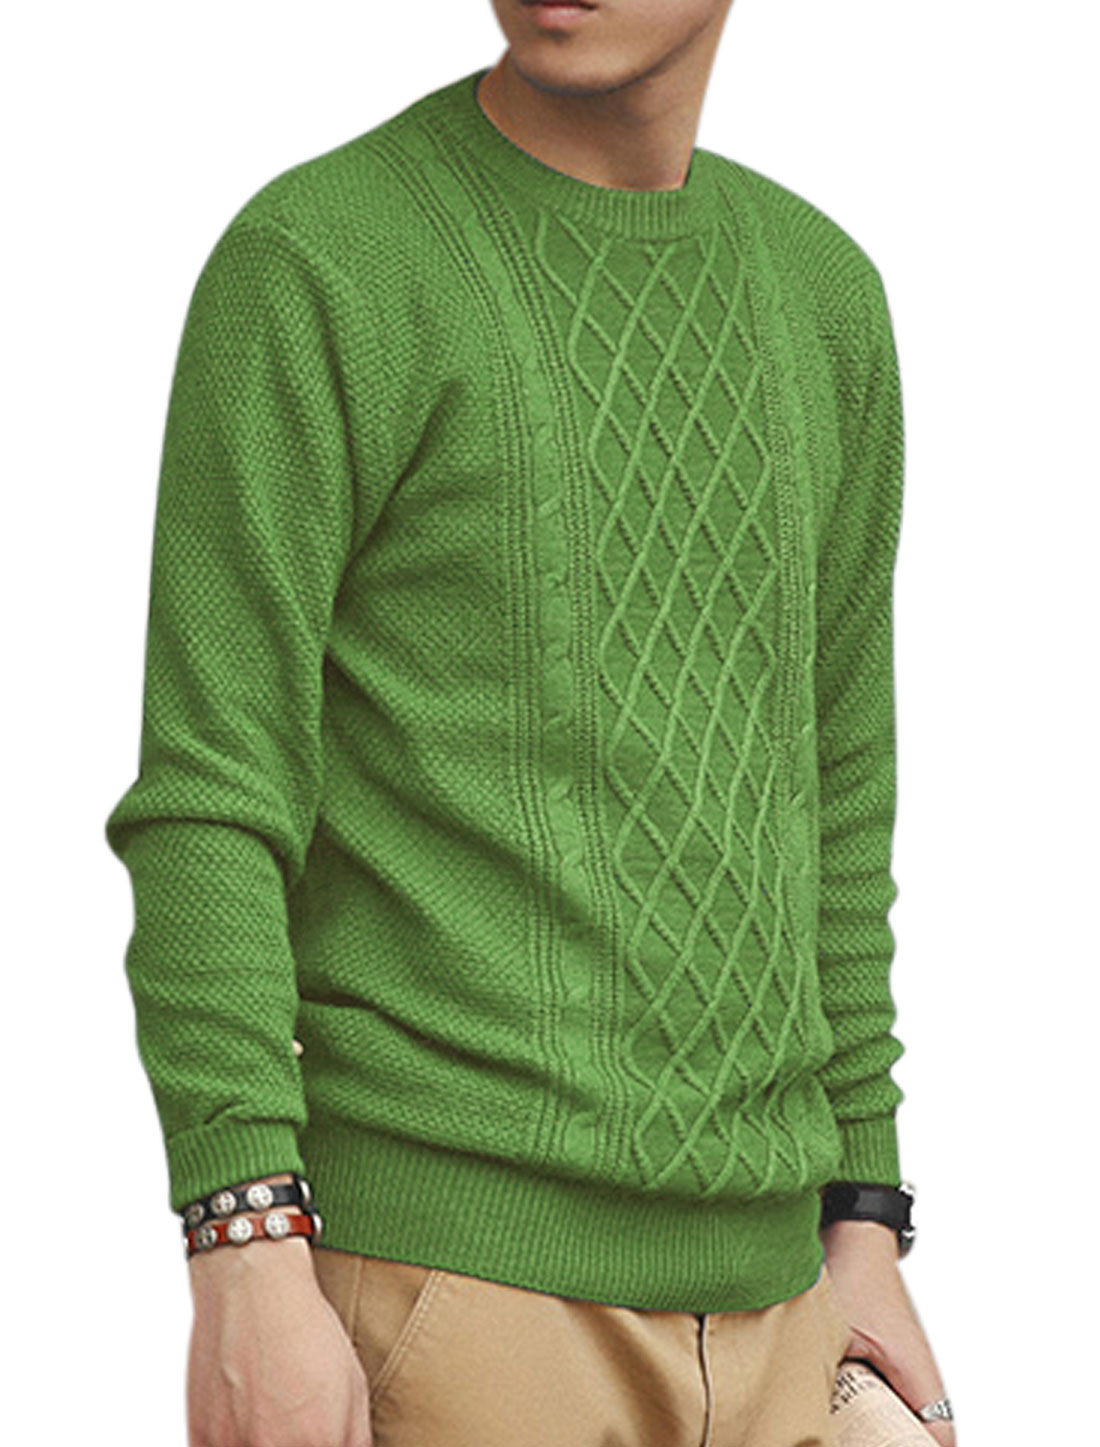 Long Sleeves Argyle Design Ribbed Trim Stylish Sweater for Men Light Green S